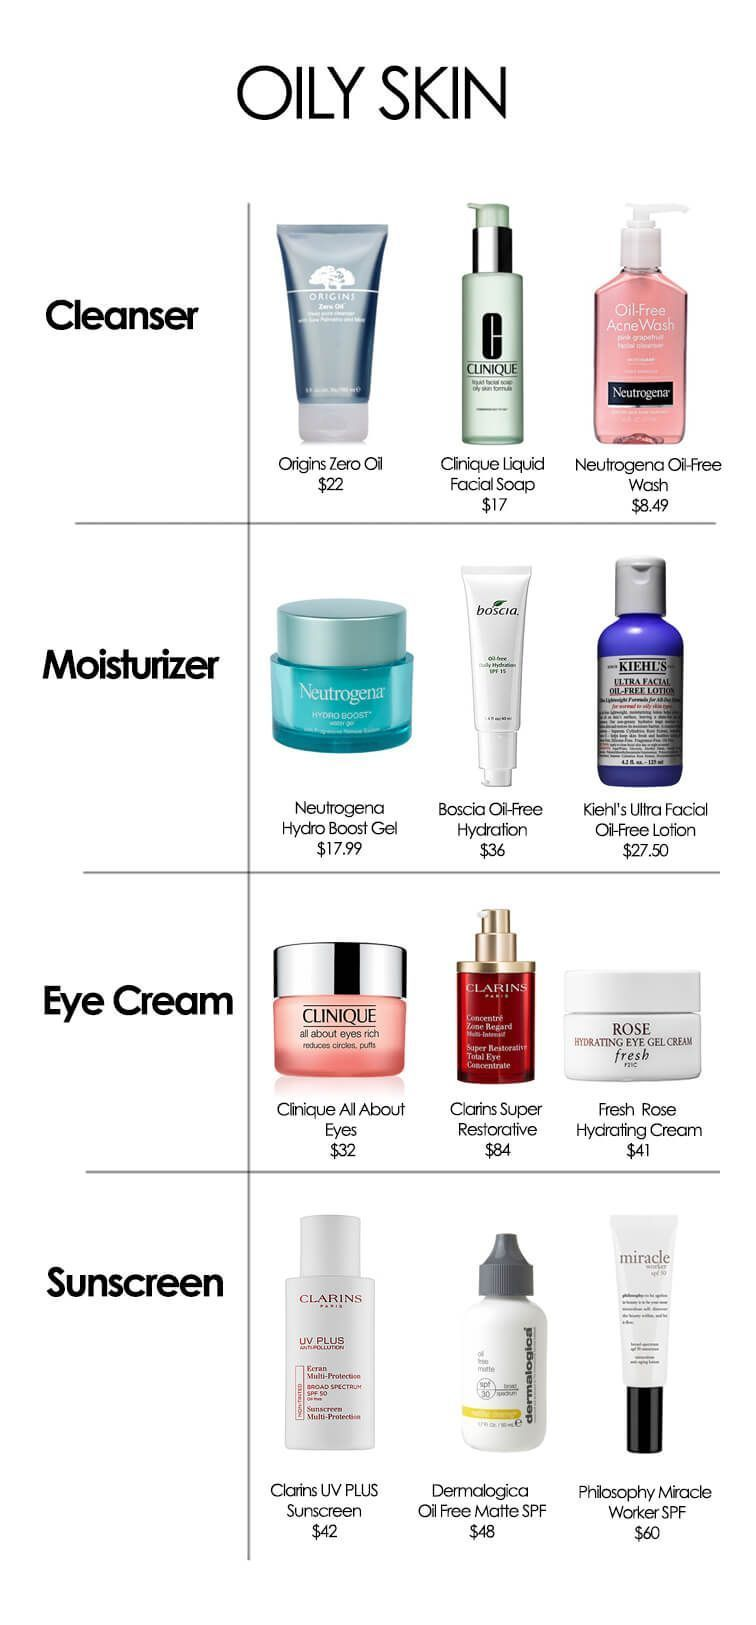 It So Important To Have A Solid Skincare Routine So Today I Wanted To Share A Guide Of Skincare Recommendations In 2020 Skin Cleanser Products Skin Care Oily Skin Care